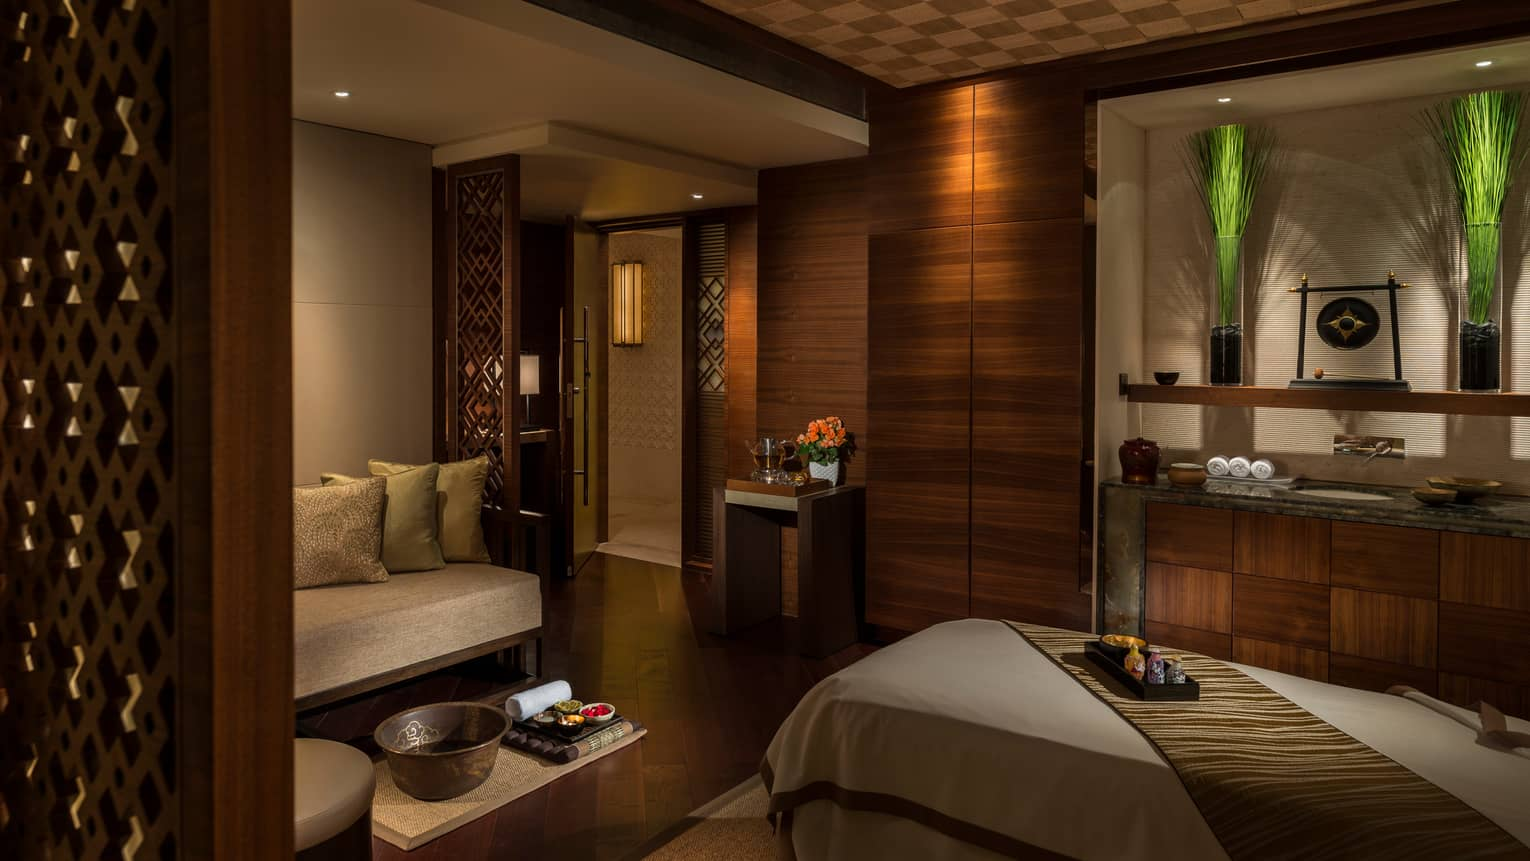 Spa treatment room with carved wood detail walls, bed and table with trays with oils